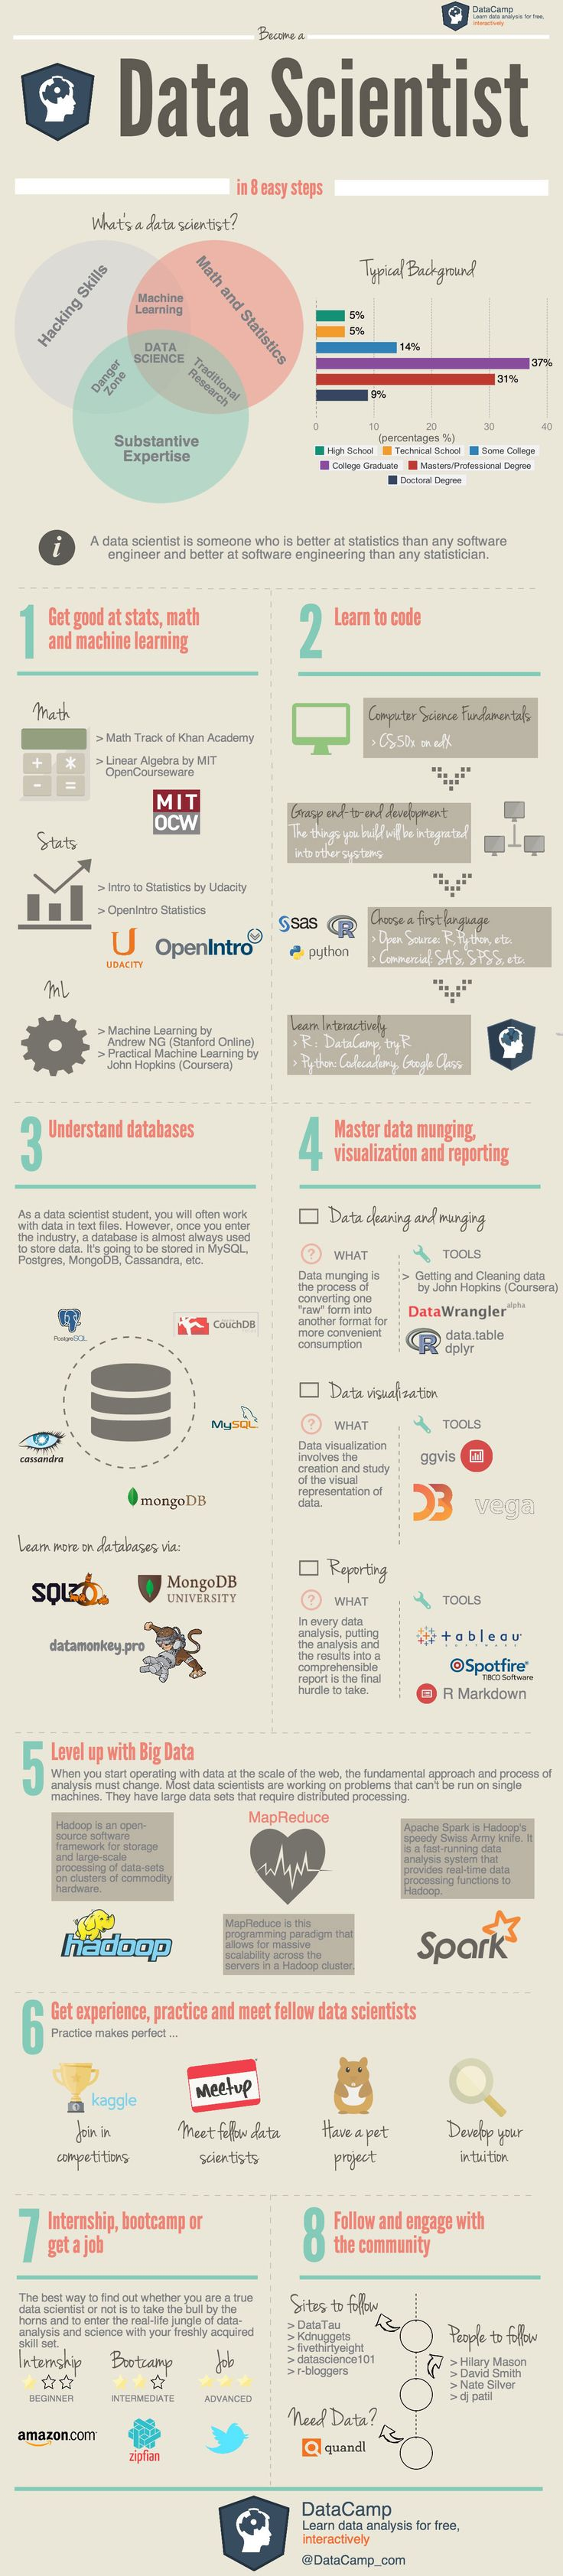 348 best data science images on pinterest big data data science